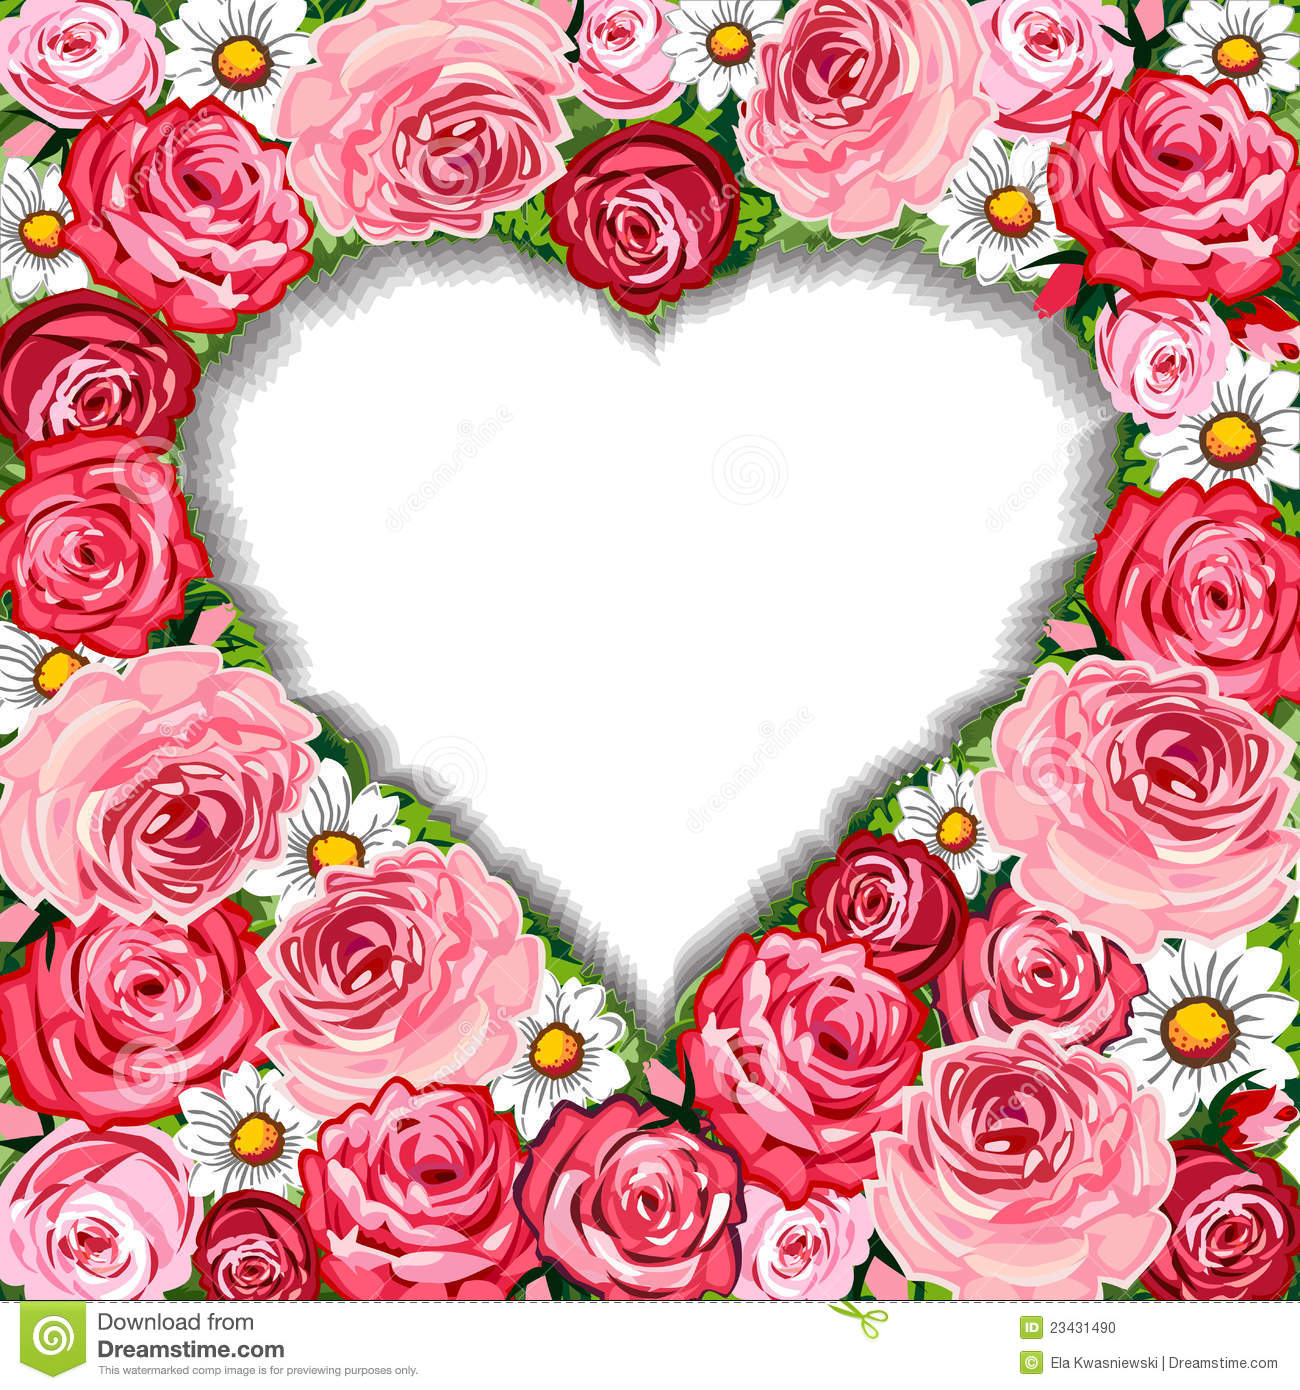 heart and roses background - photo #41